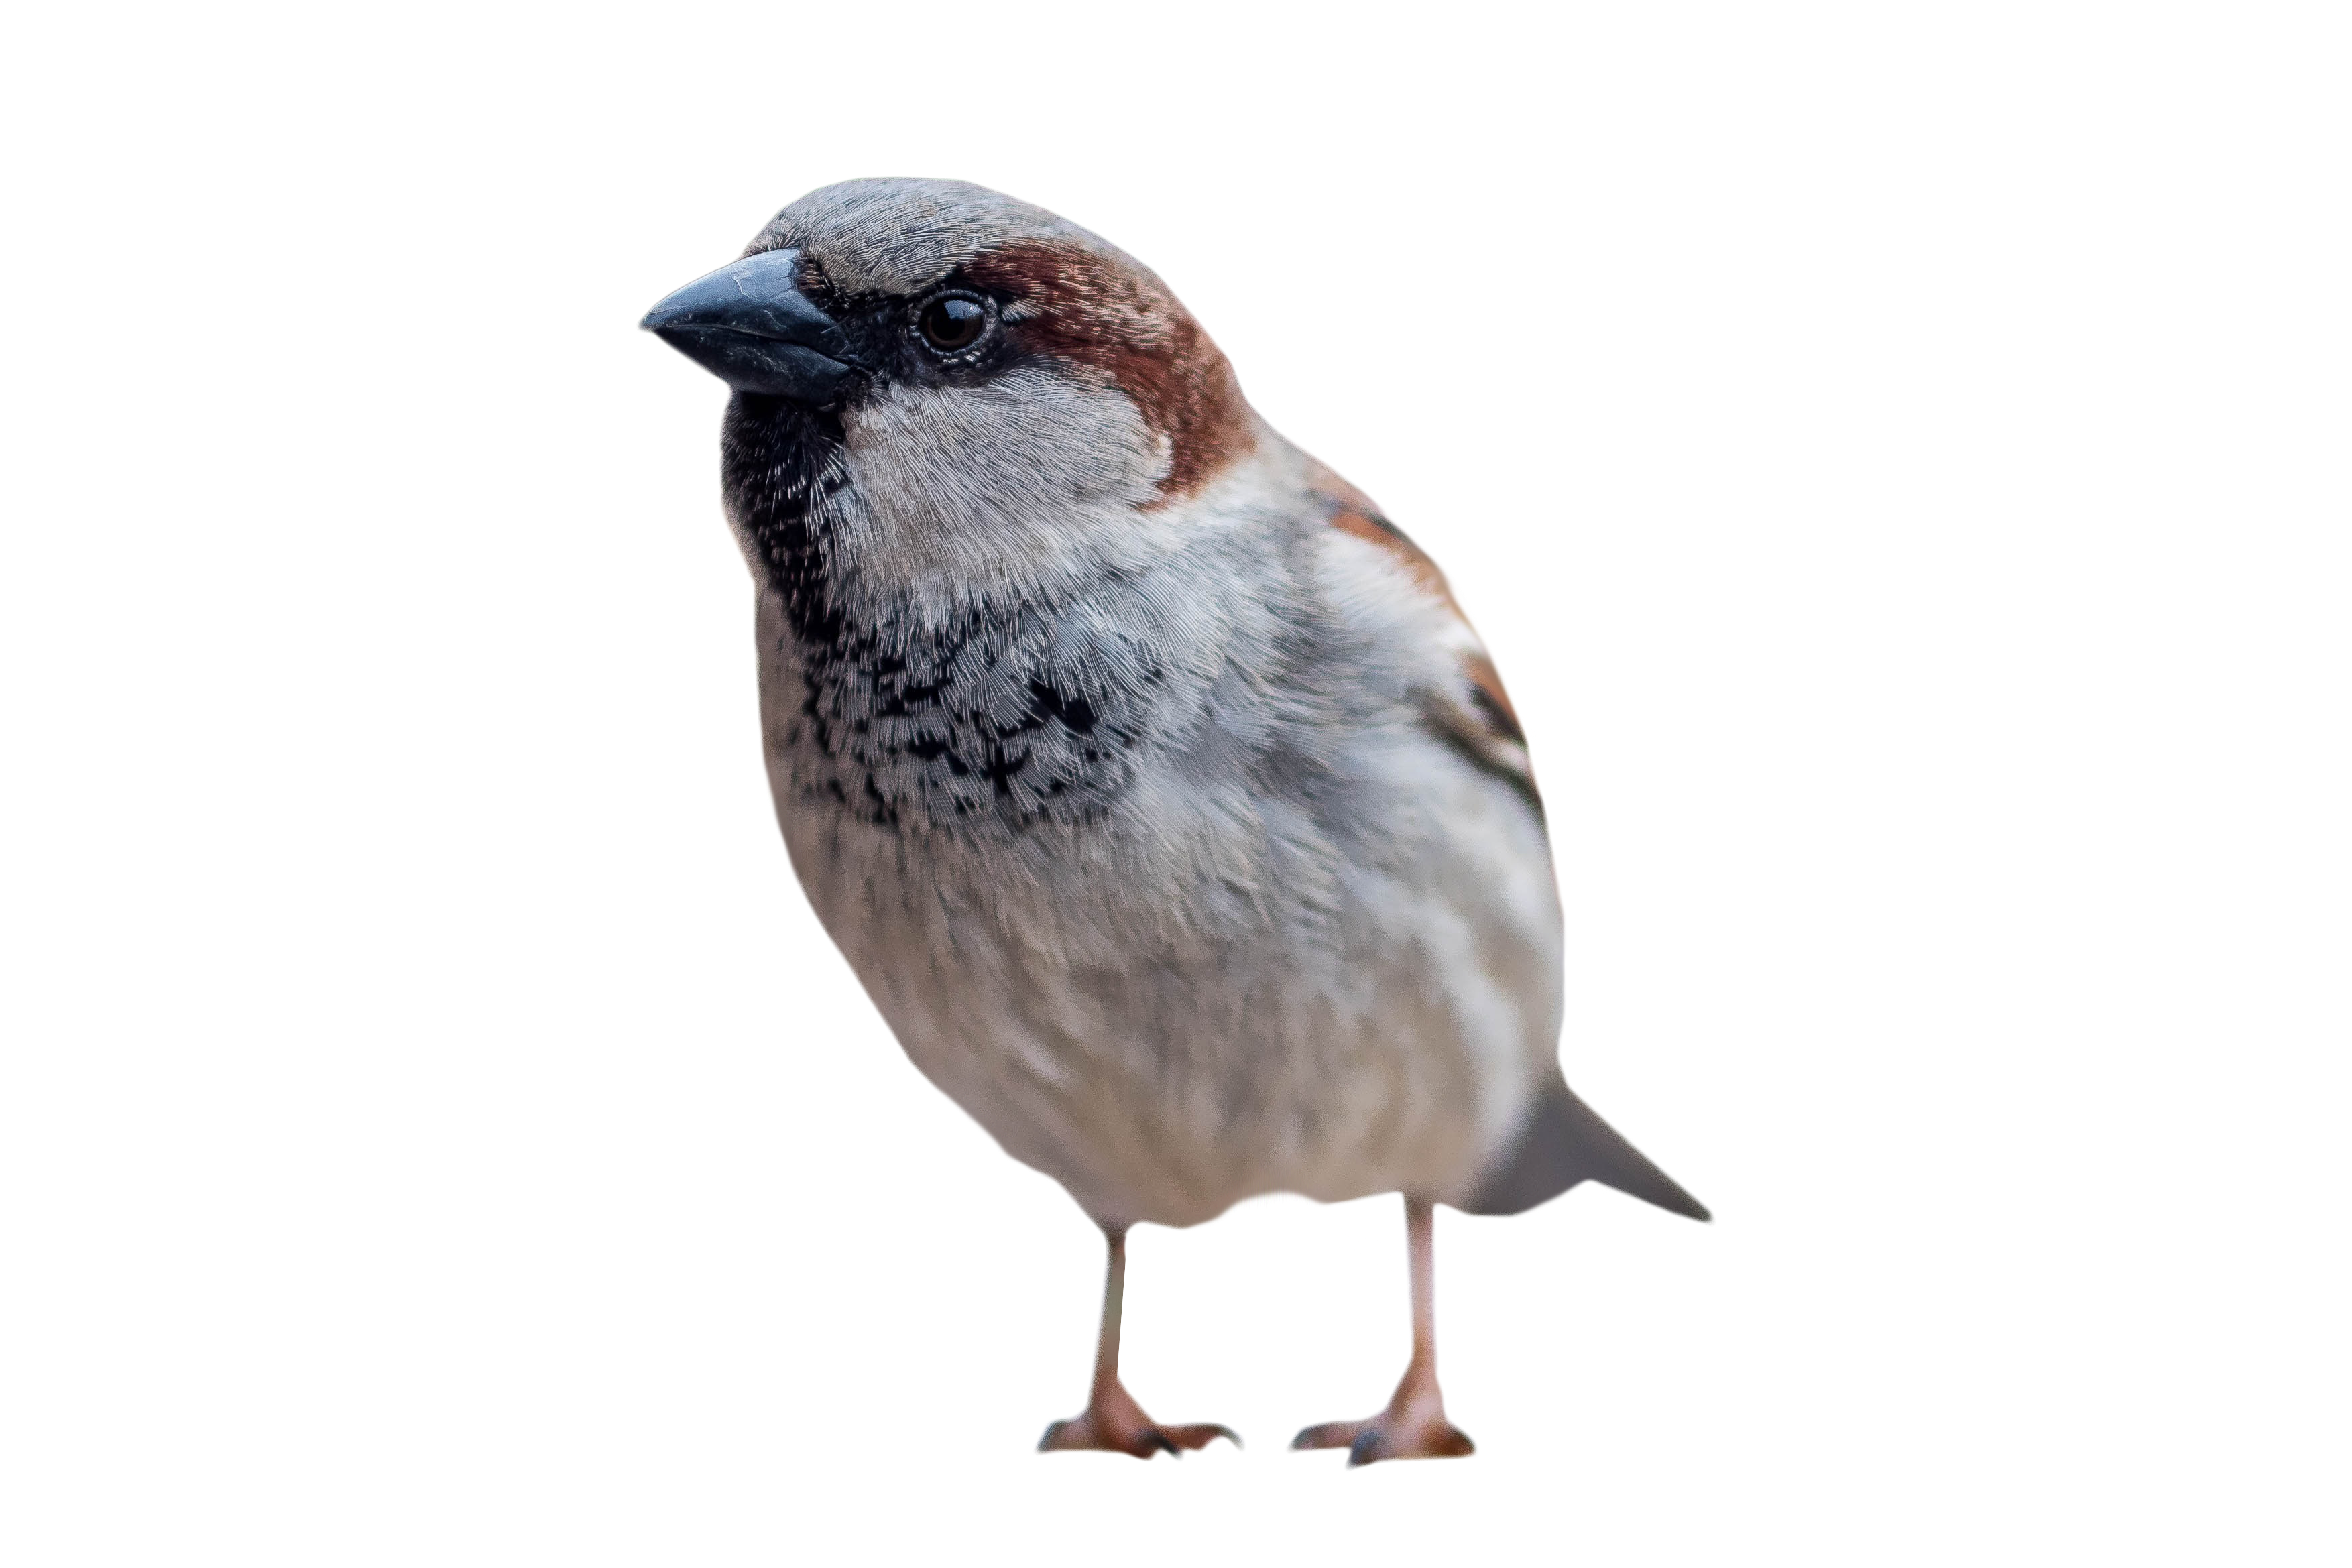 House sparrow clipart image library stock Sparrow Standing PNG Image - PurePNG | Free transparent CC0 PNG ... image library stock